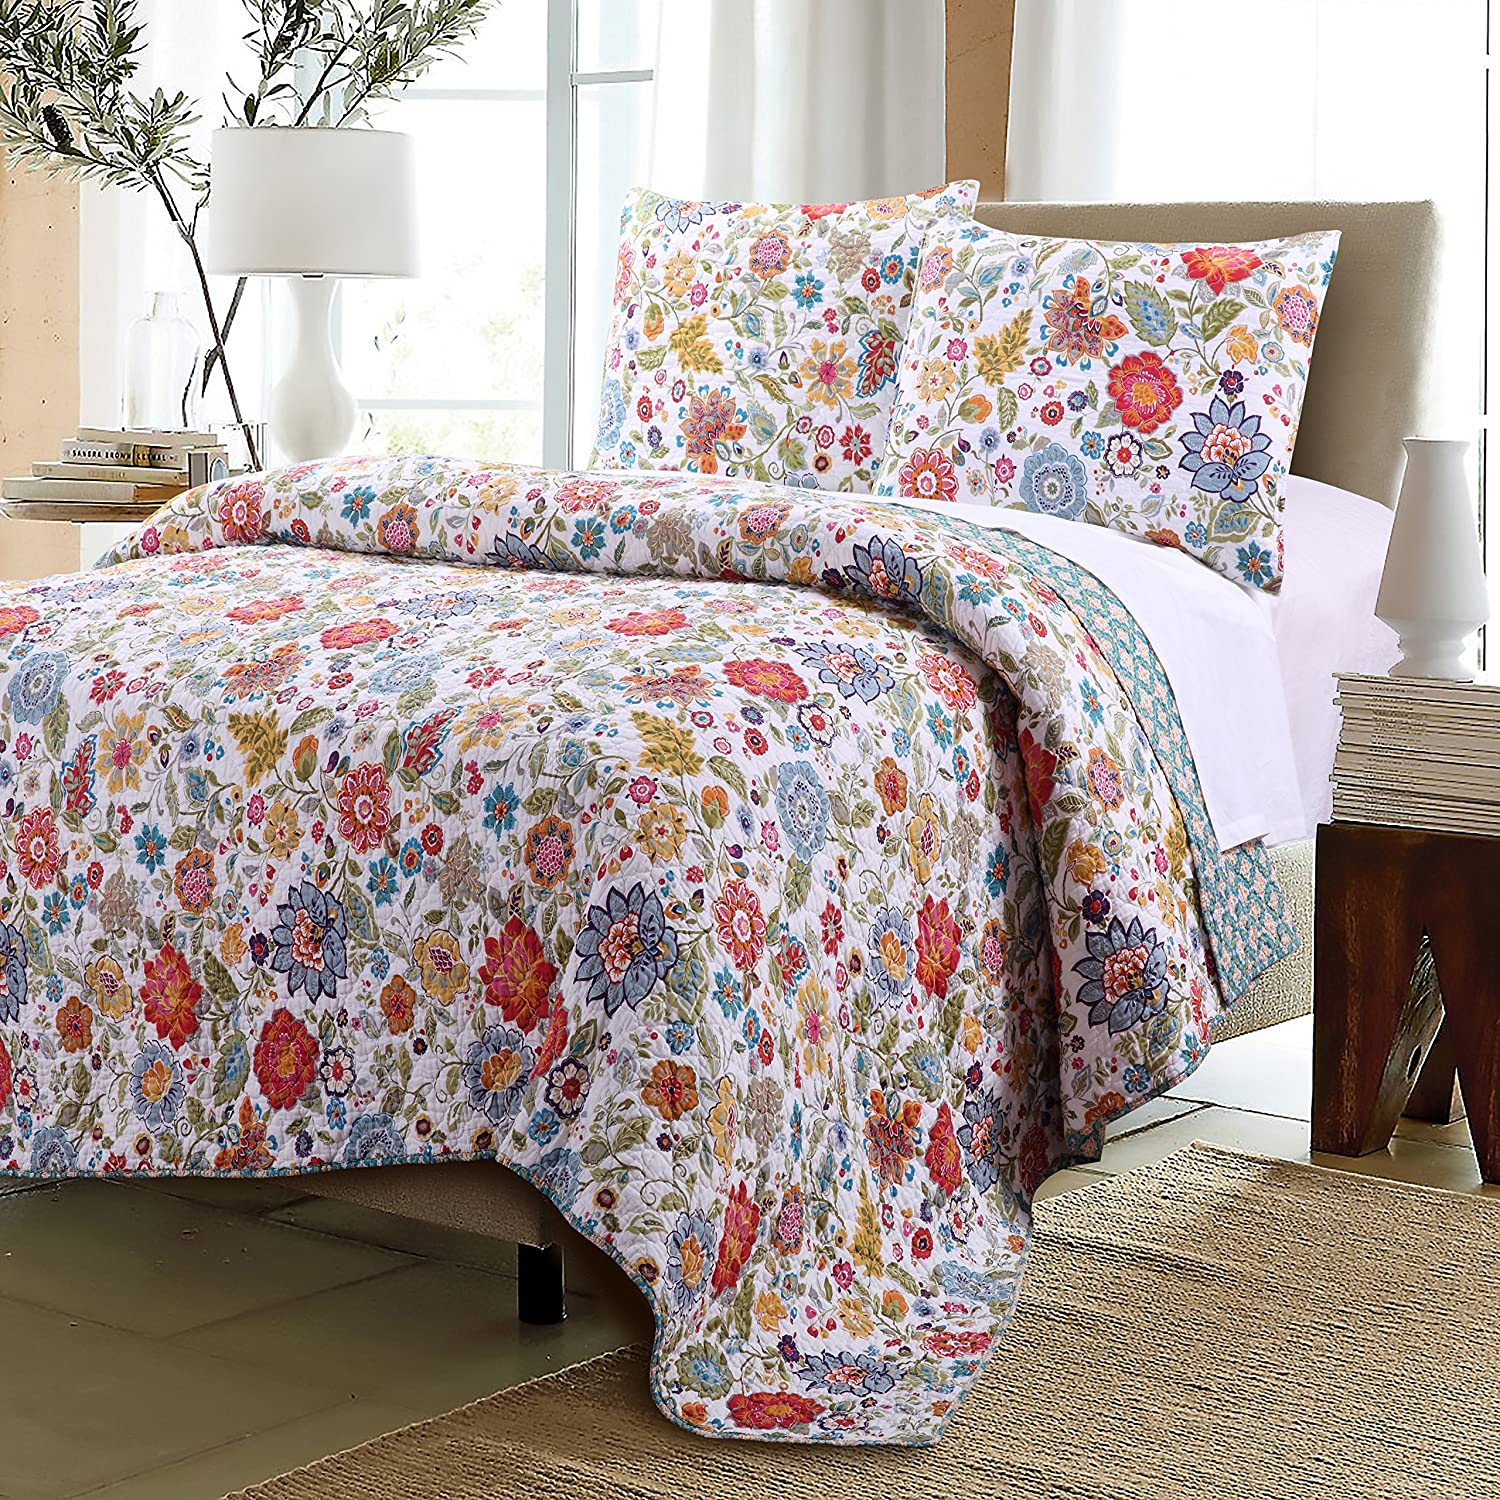 Greenland Home 3 Piece Astoria Quilt Set, Full/Queen, White